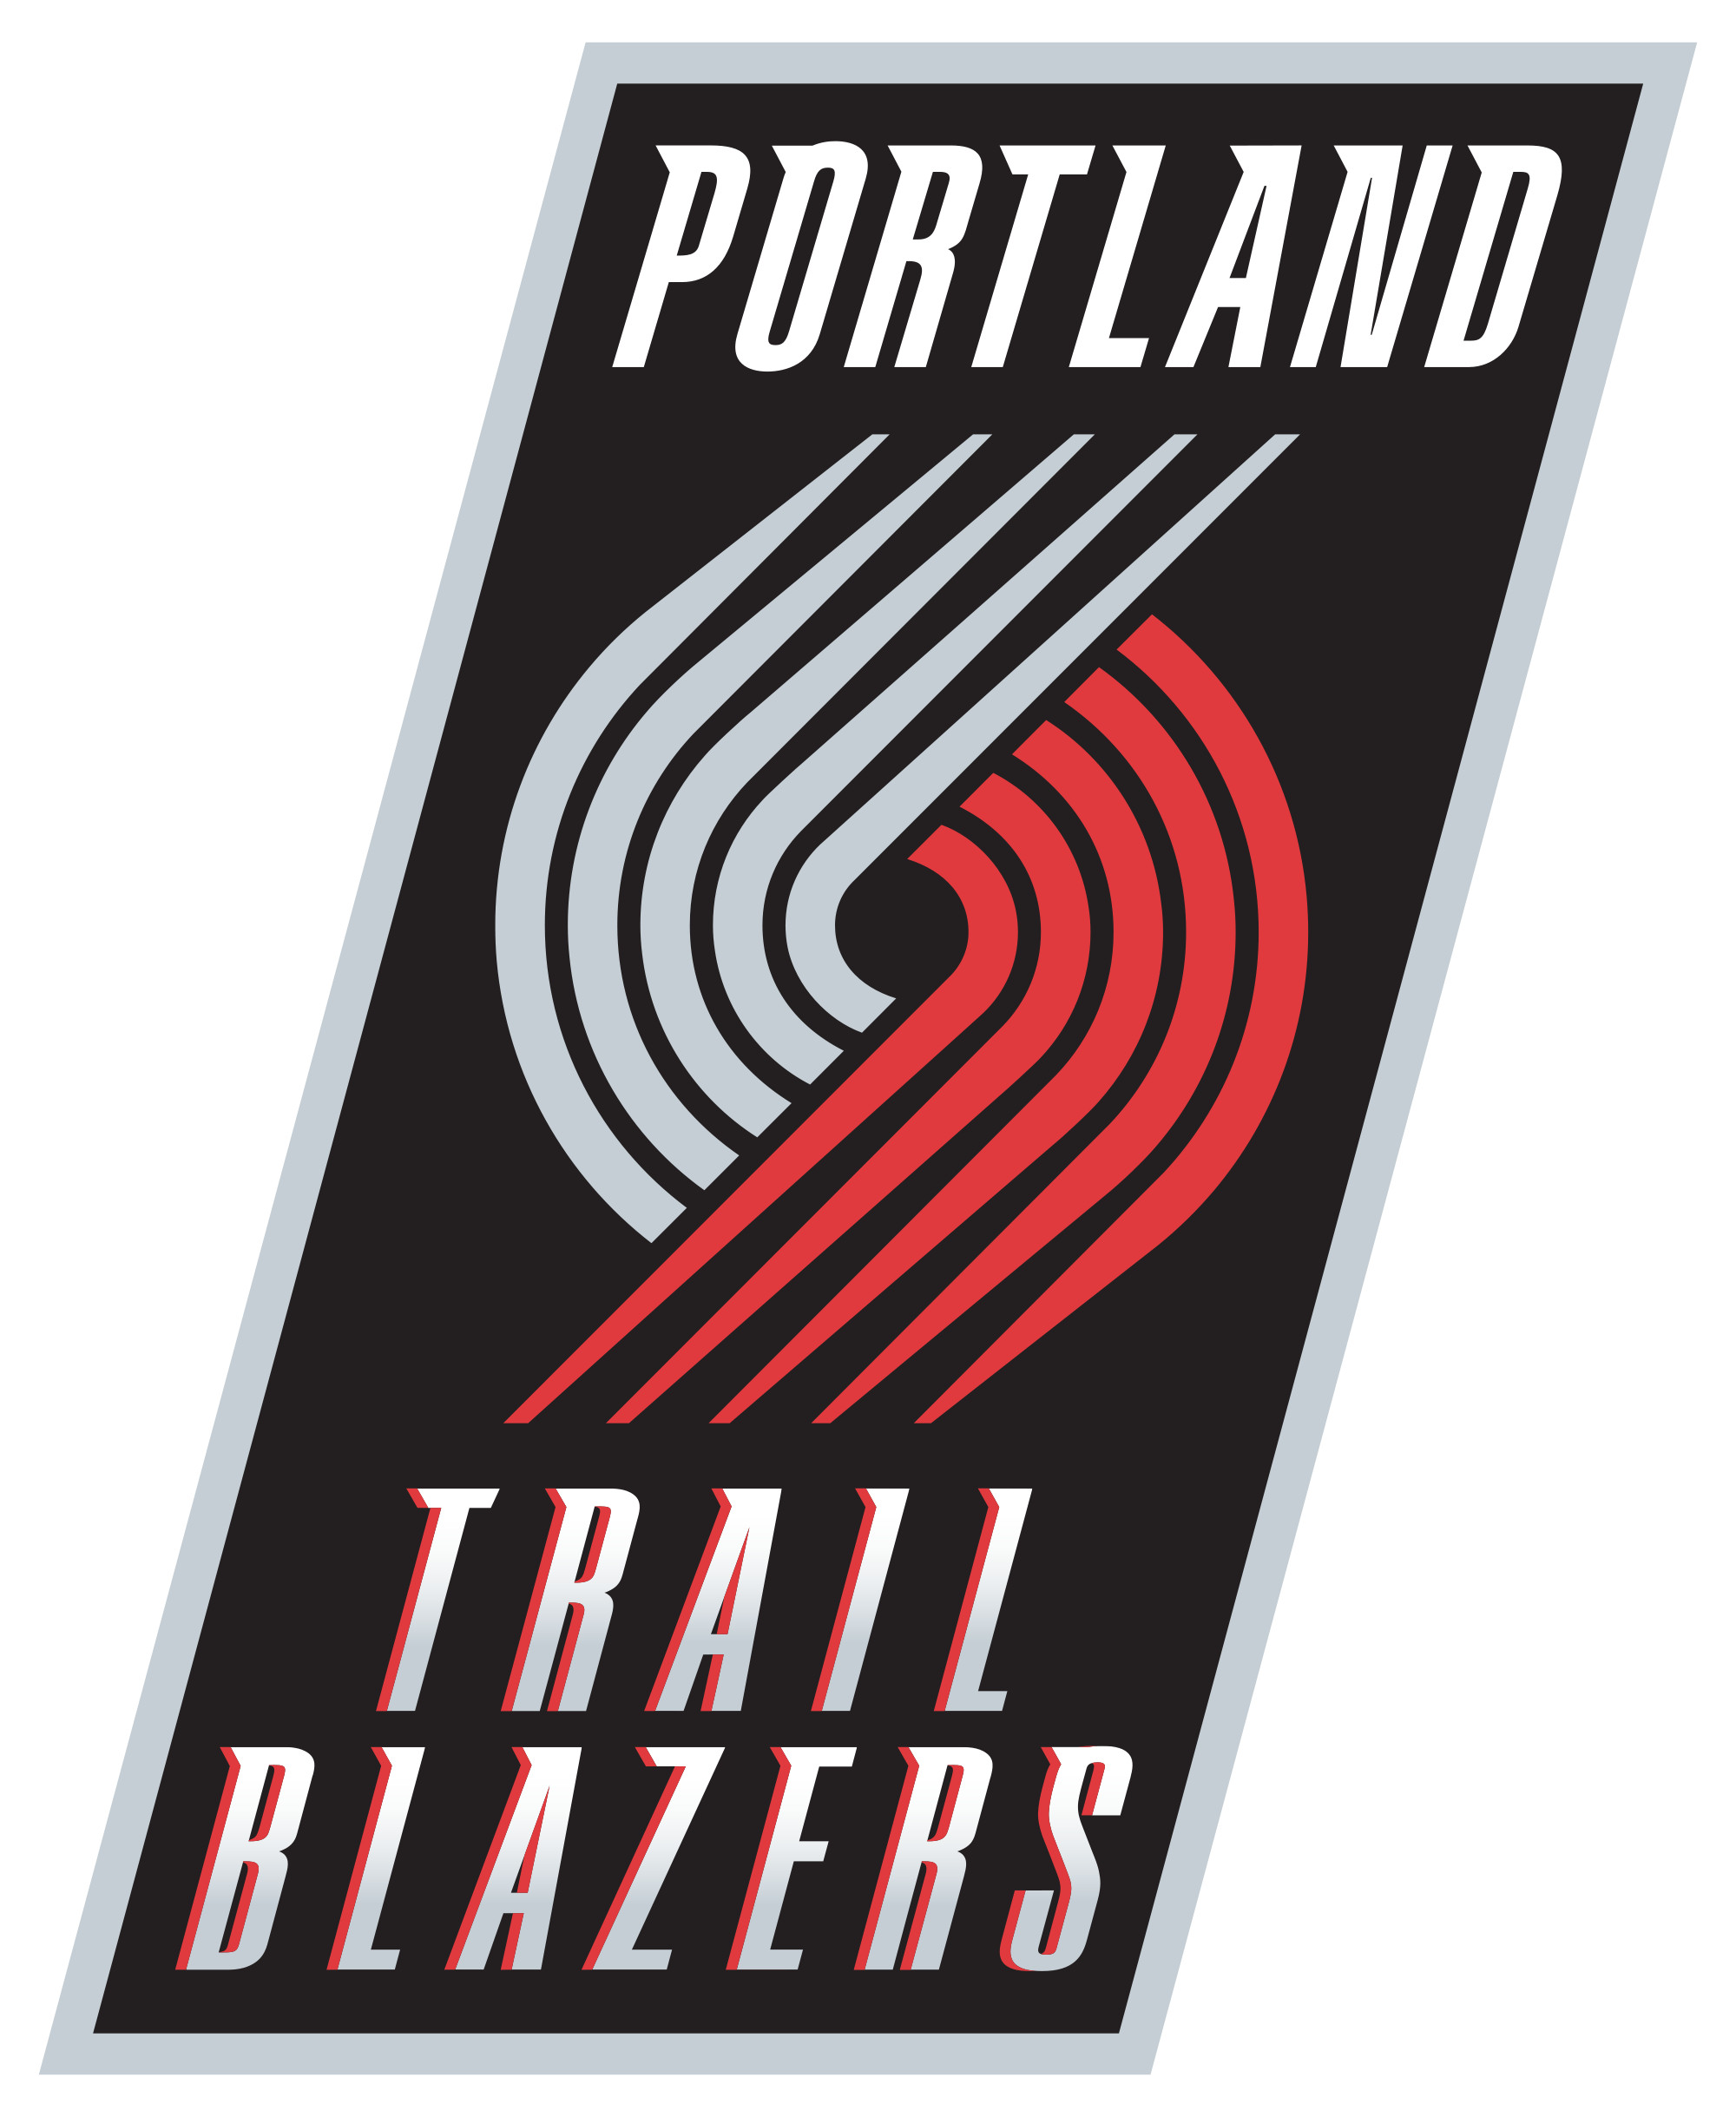 2000x2439 Portland Trail Blazers Logo Wallpaper